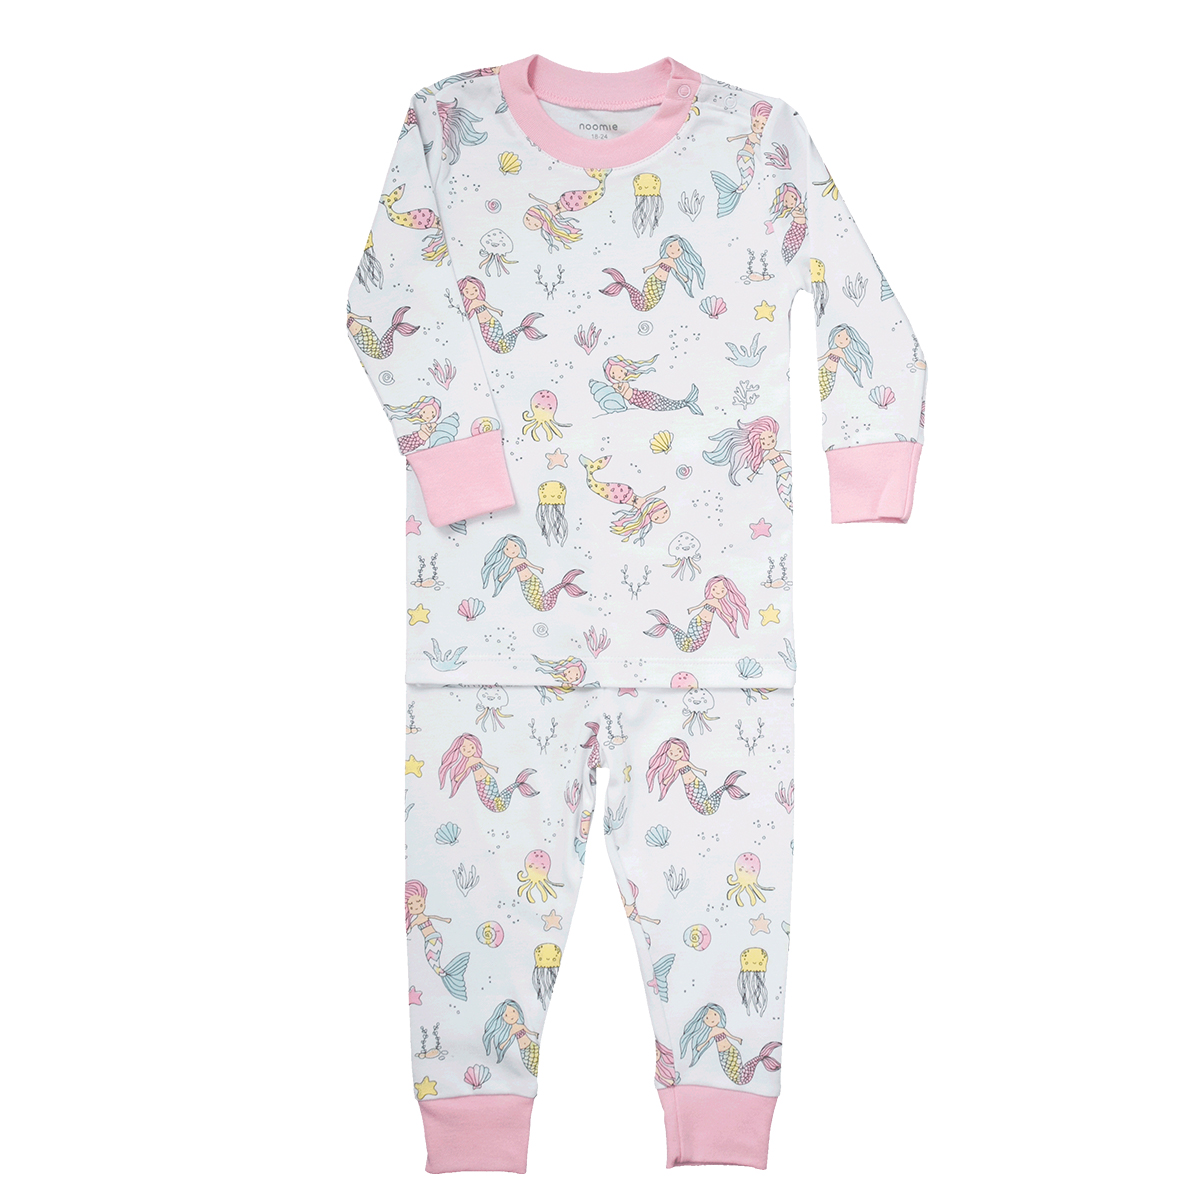 Baby Noomie Two Piece PJ Set- Mermaid